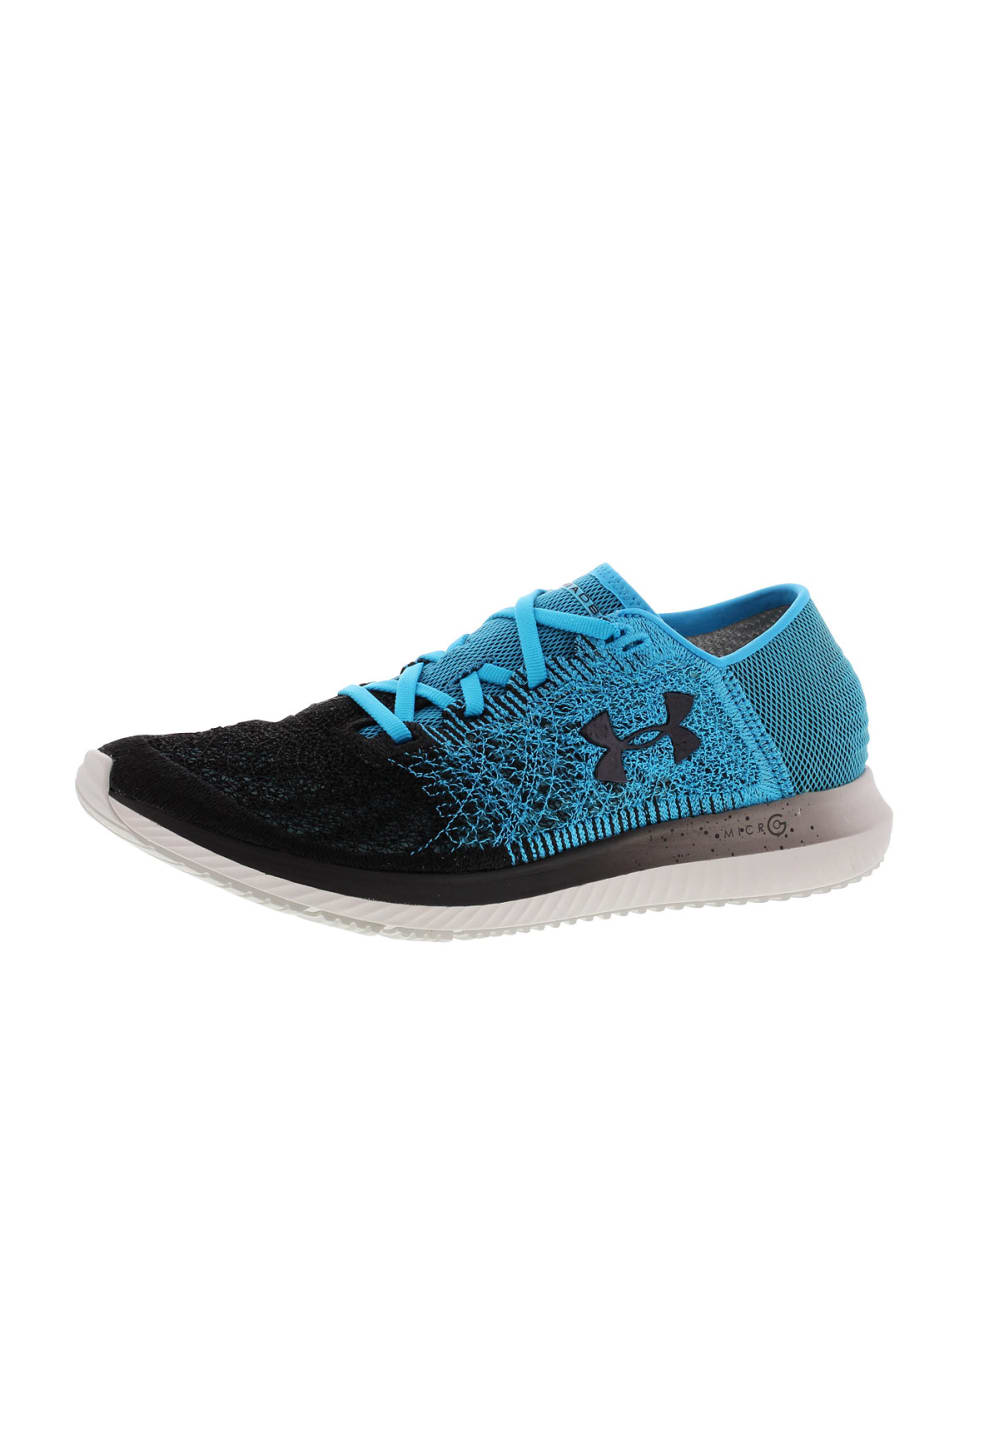 931cf41d Under Armour Threadborne Blur - Running shoes for Men - Blue | 21RUN